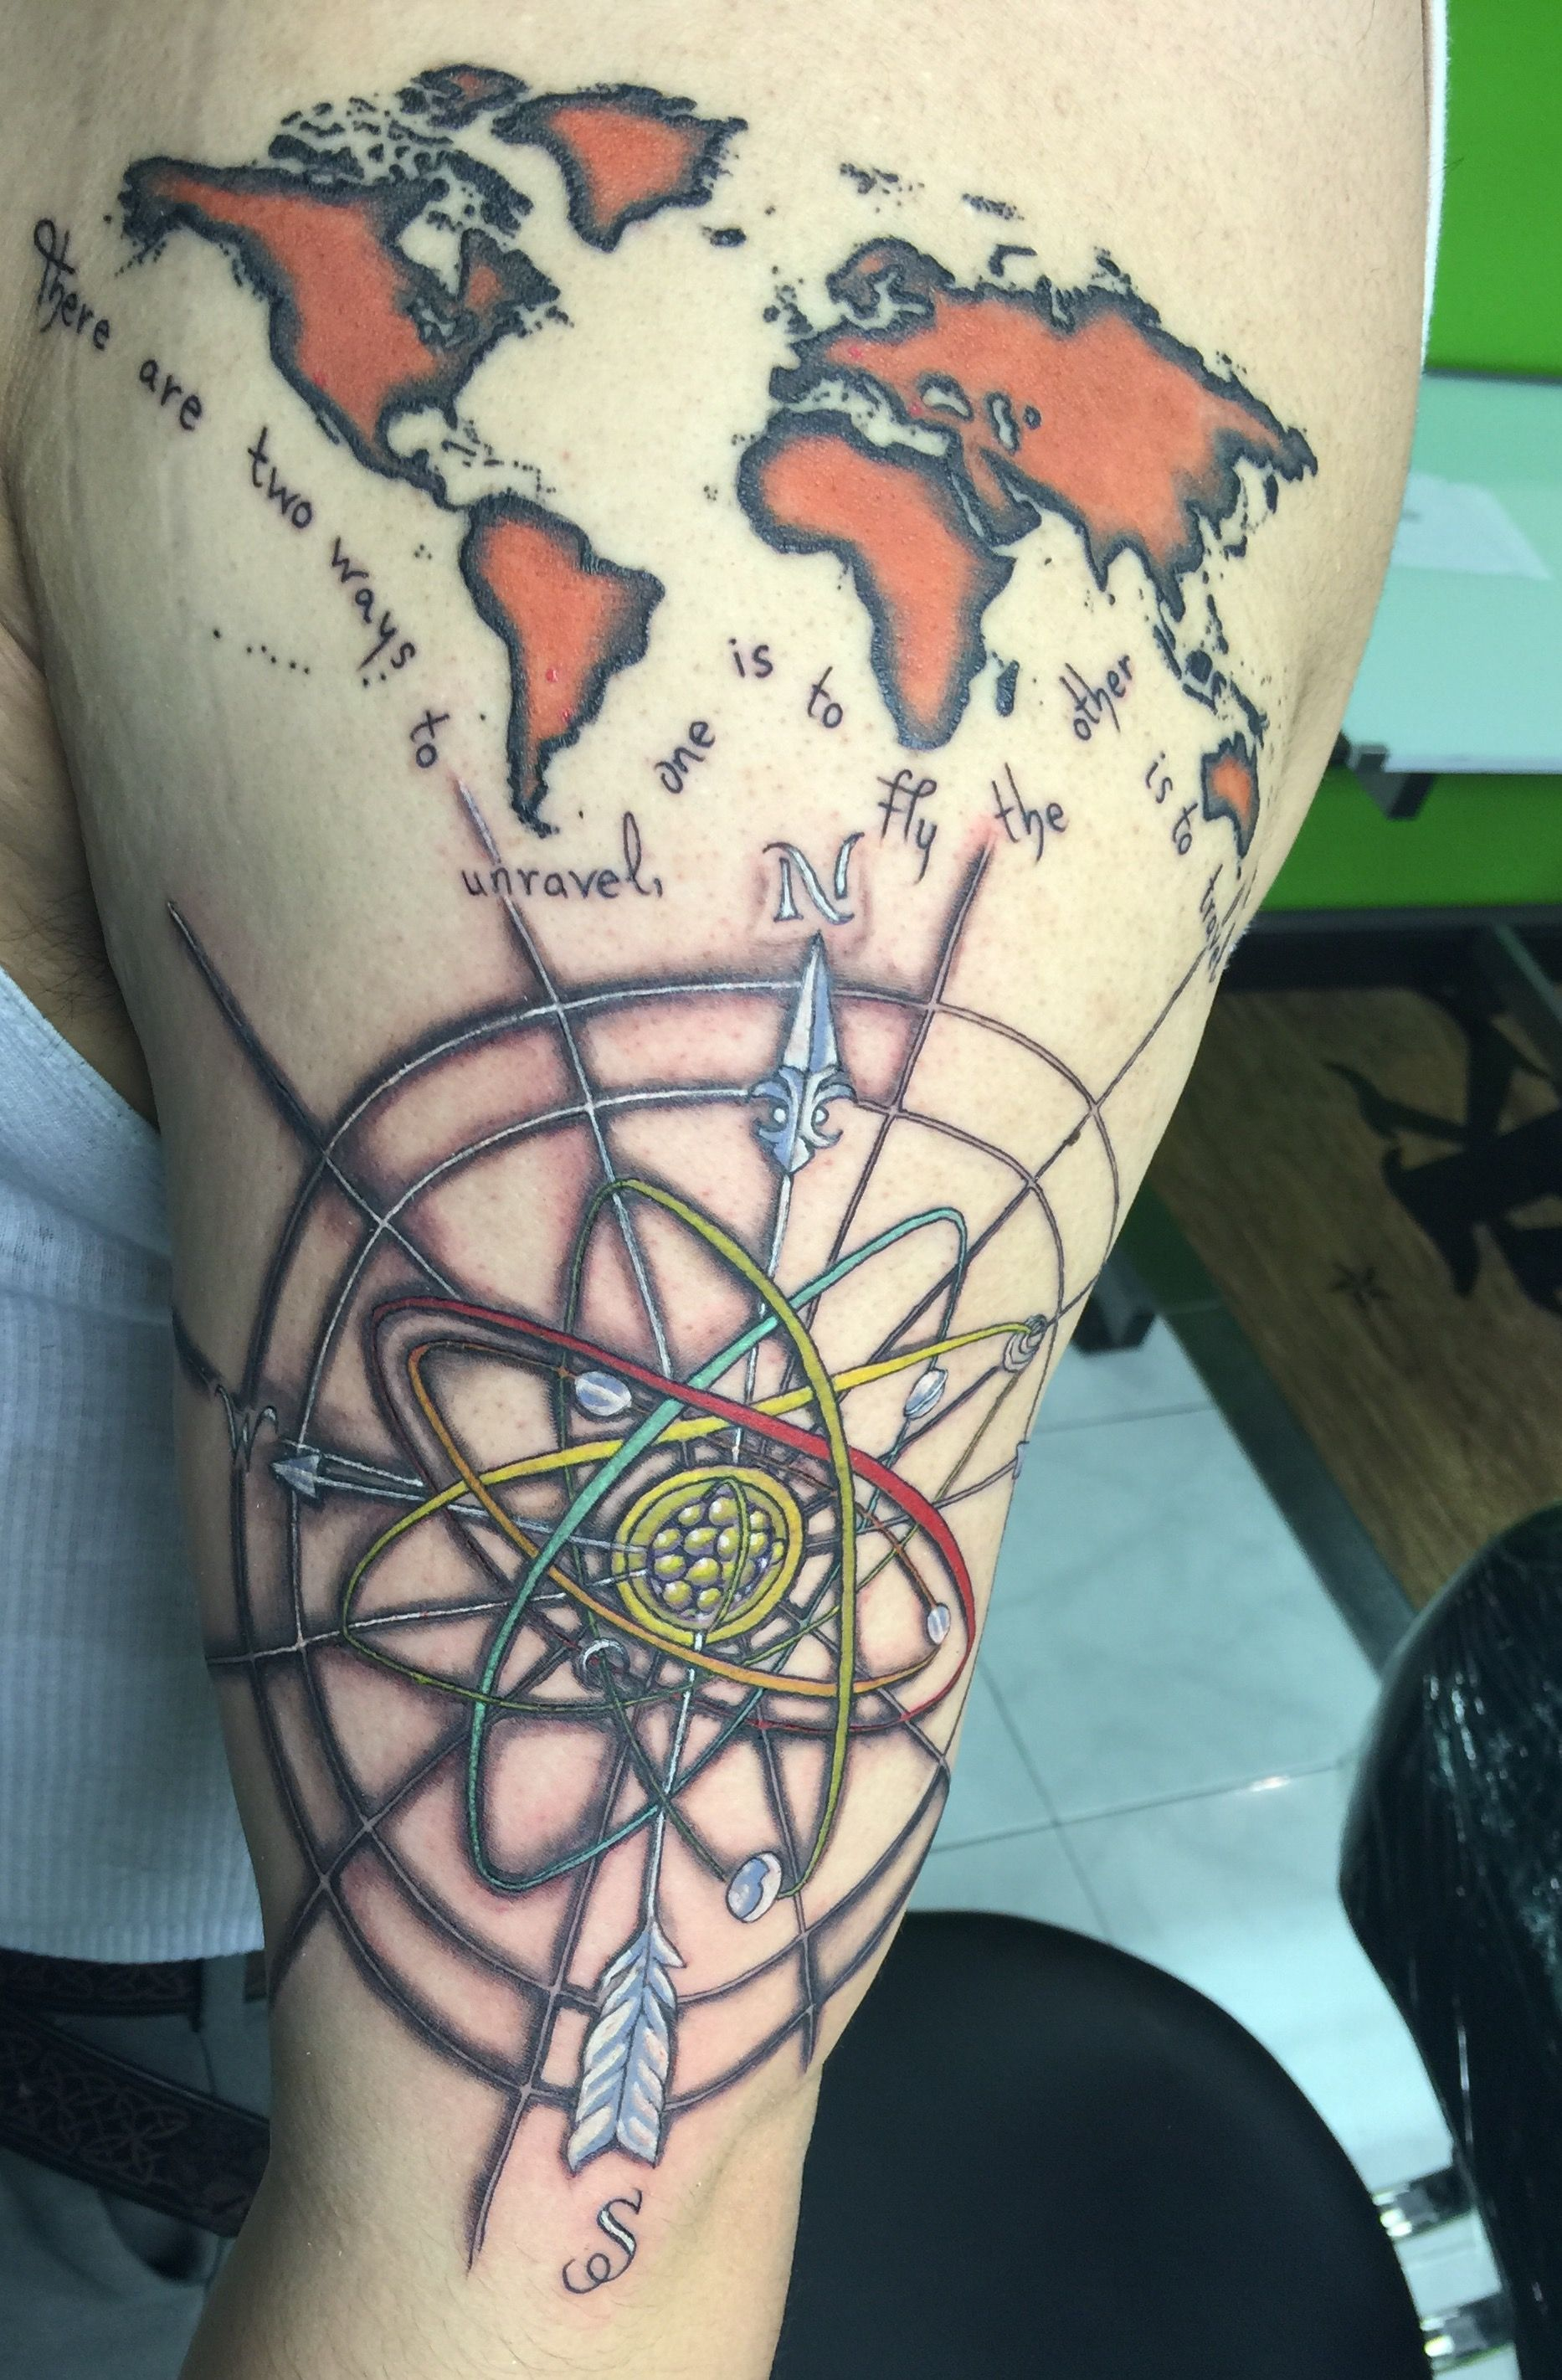 Compass tattoo atom tattoo world map tattoo body art pinterest compass tattoo atom tattoo world map tattoo gumiabroncs Image collections